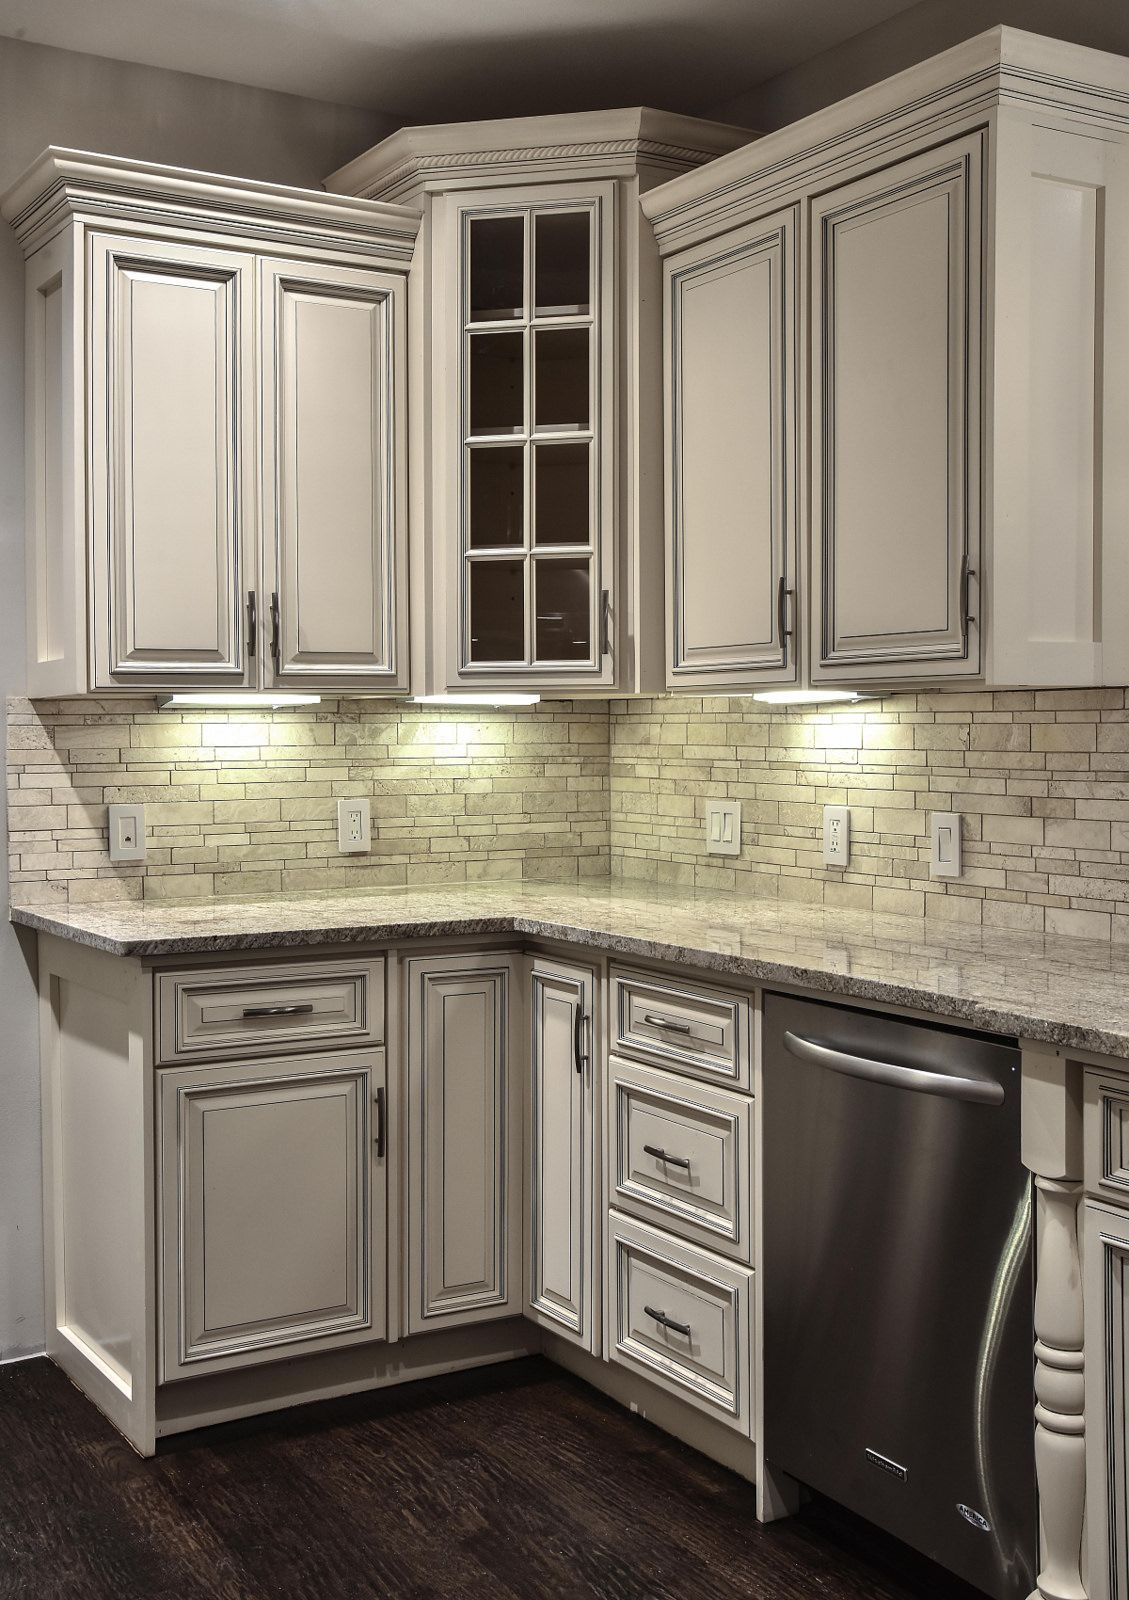 Signature Pearl In 2020 Glazed Kitchen Cabinets Kitchen Cabinet Styles Kitchen Remodel Small